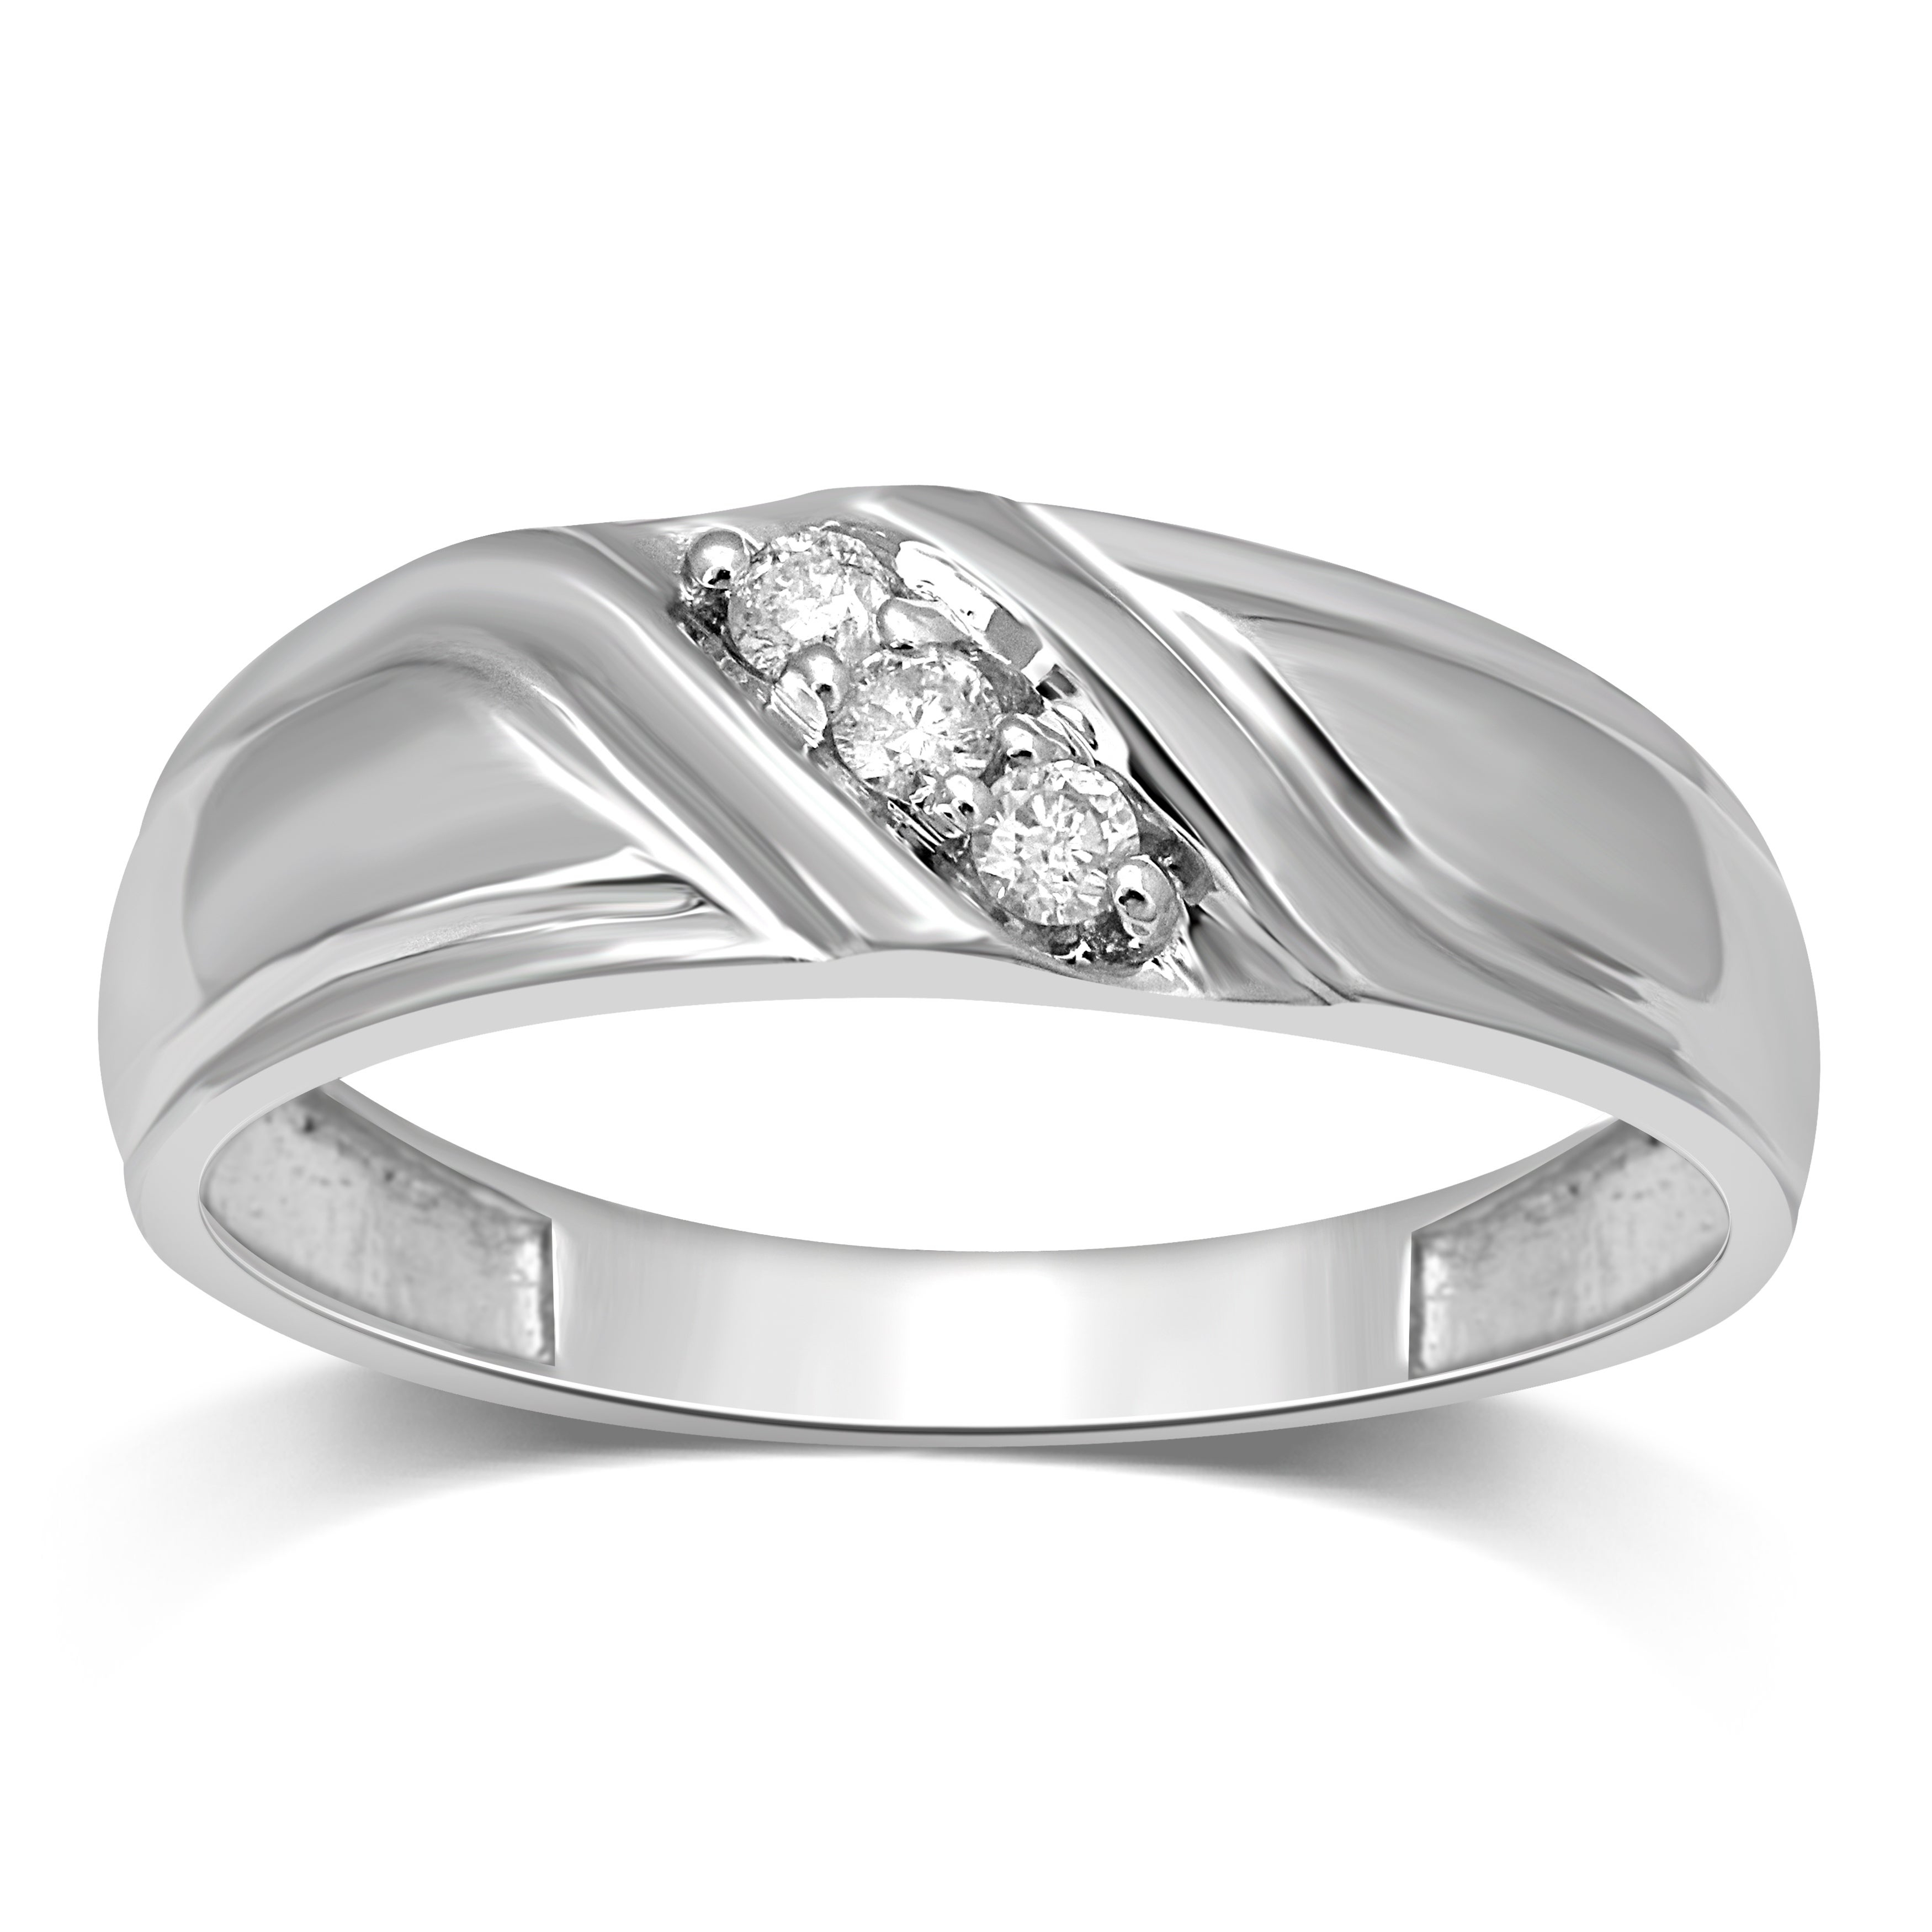 Buy Diamond Men's Wedding Bands & Groom Wedding Rings Online Within Most Current Champagne And White Diamond Edge Anniversary Bands In Rose Gold (View 3 of 25)